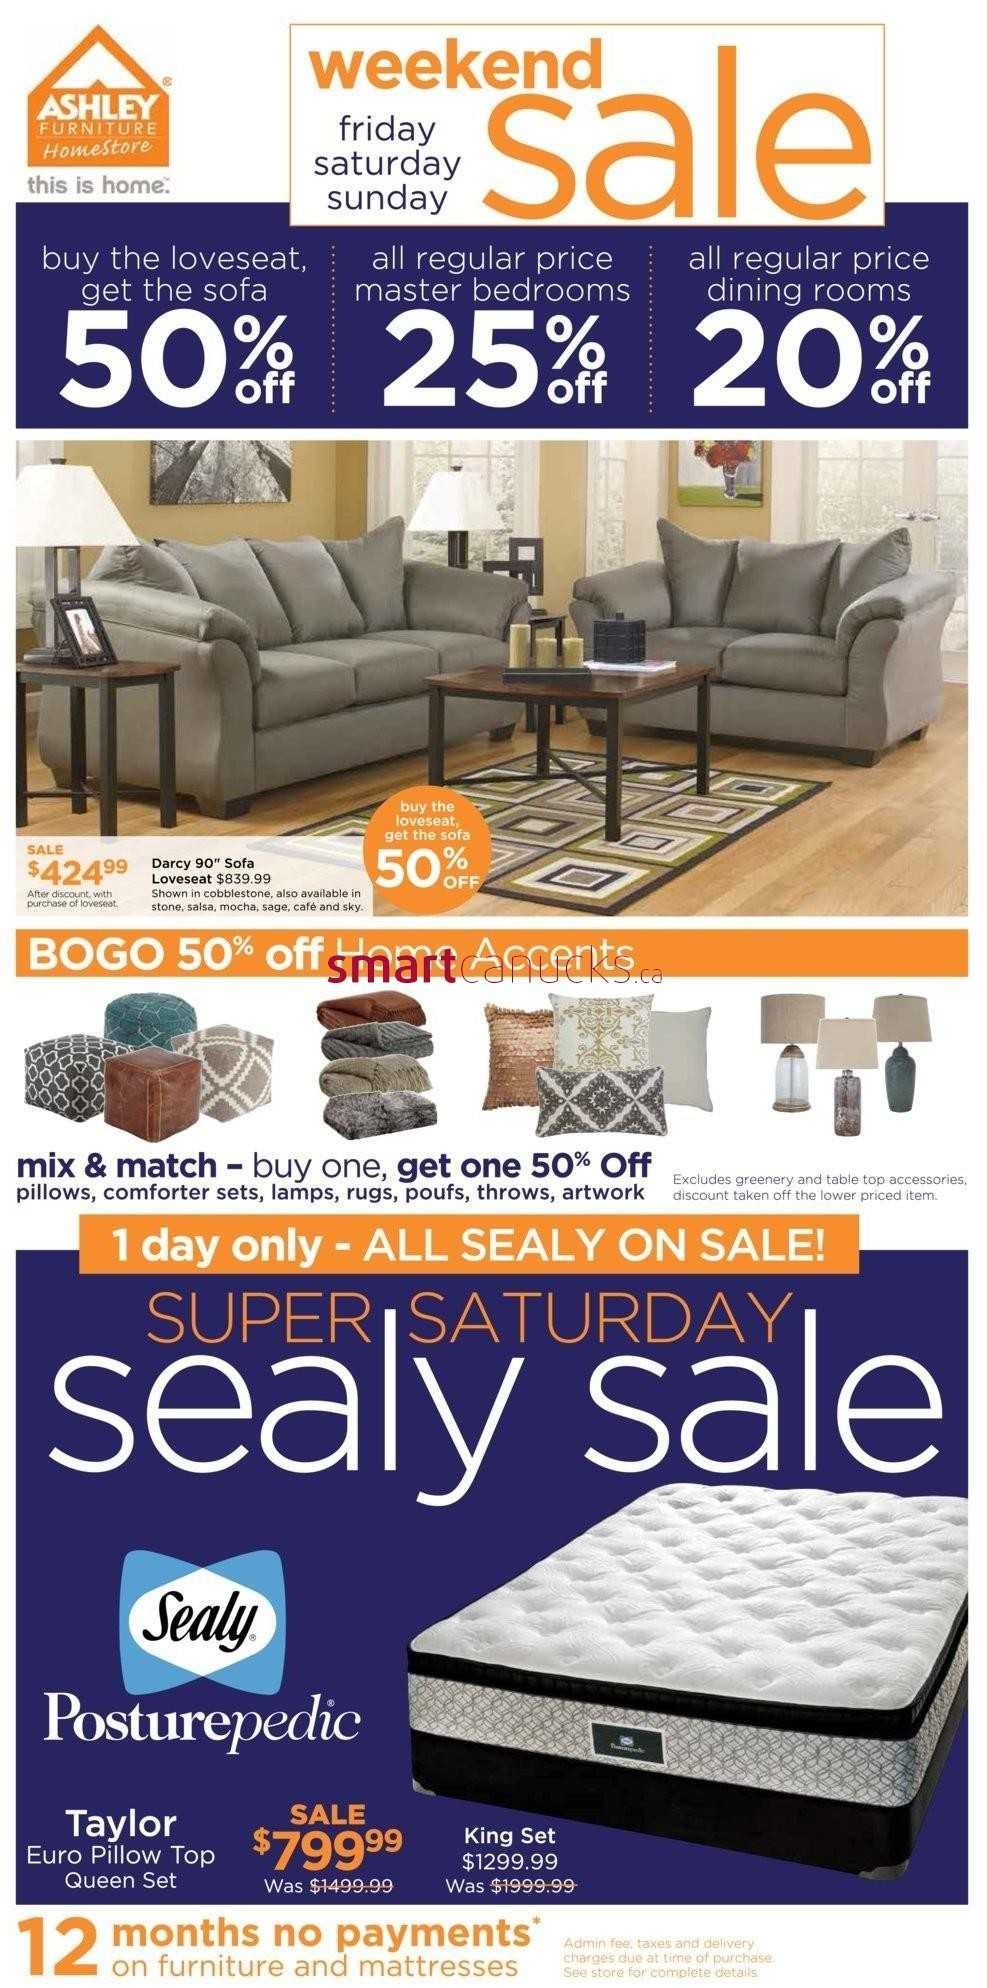 Ashley Furniture HomeStore ON Weekend Sale Flyer